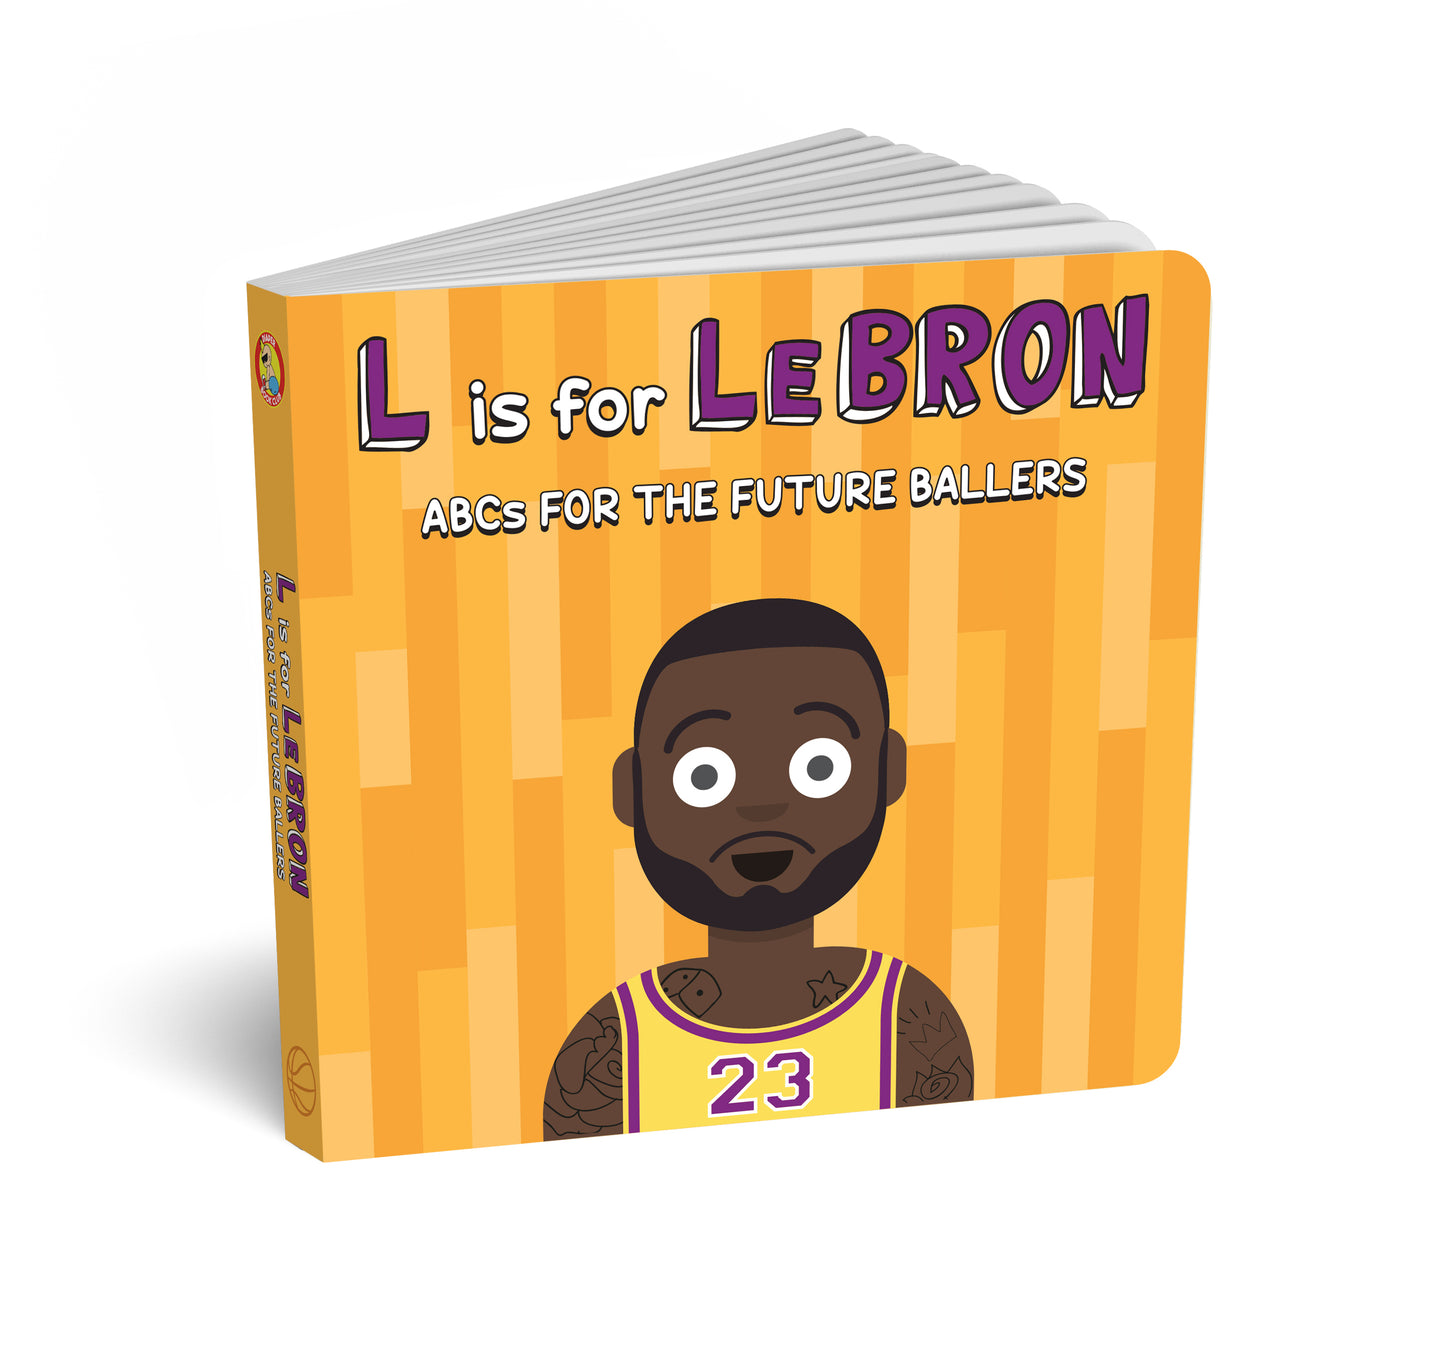 L is for Lebron - ABCs for the Future